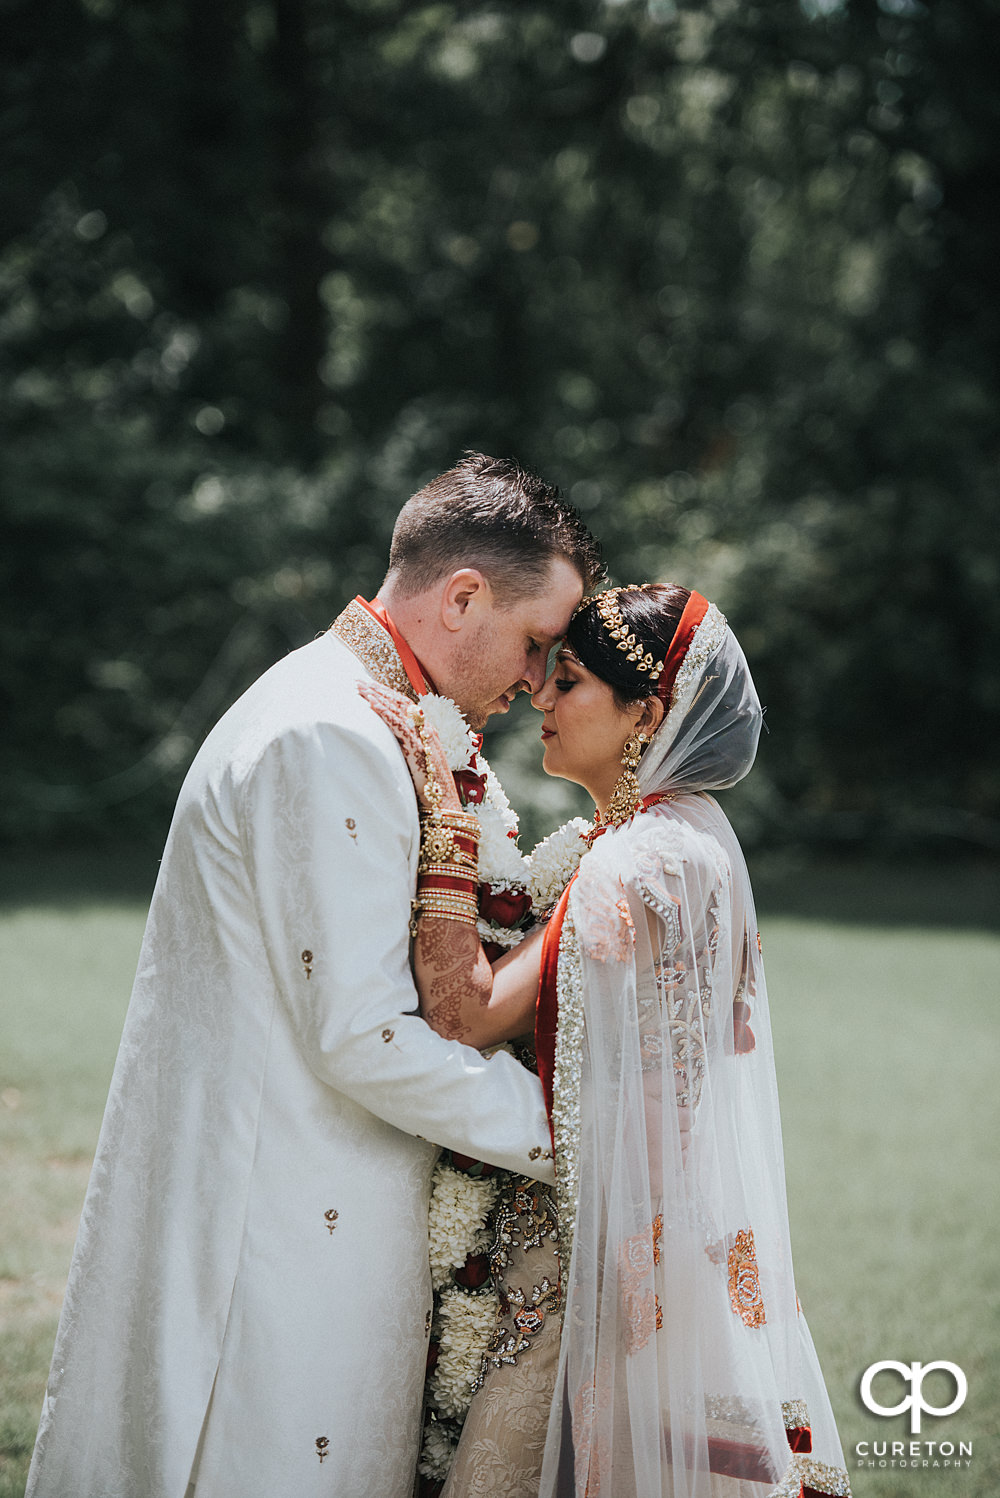 Bride and groom outside after their Indian wedding at Embassy Suites in Greenville,SC.